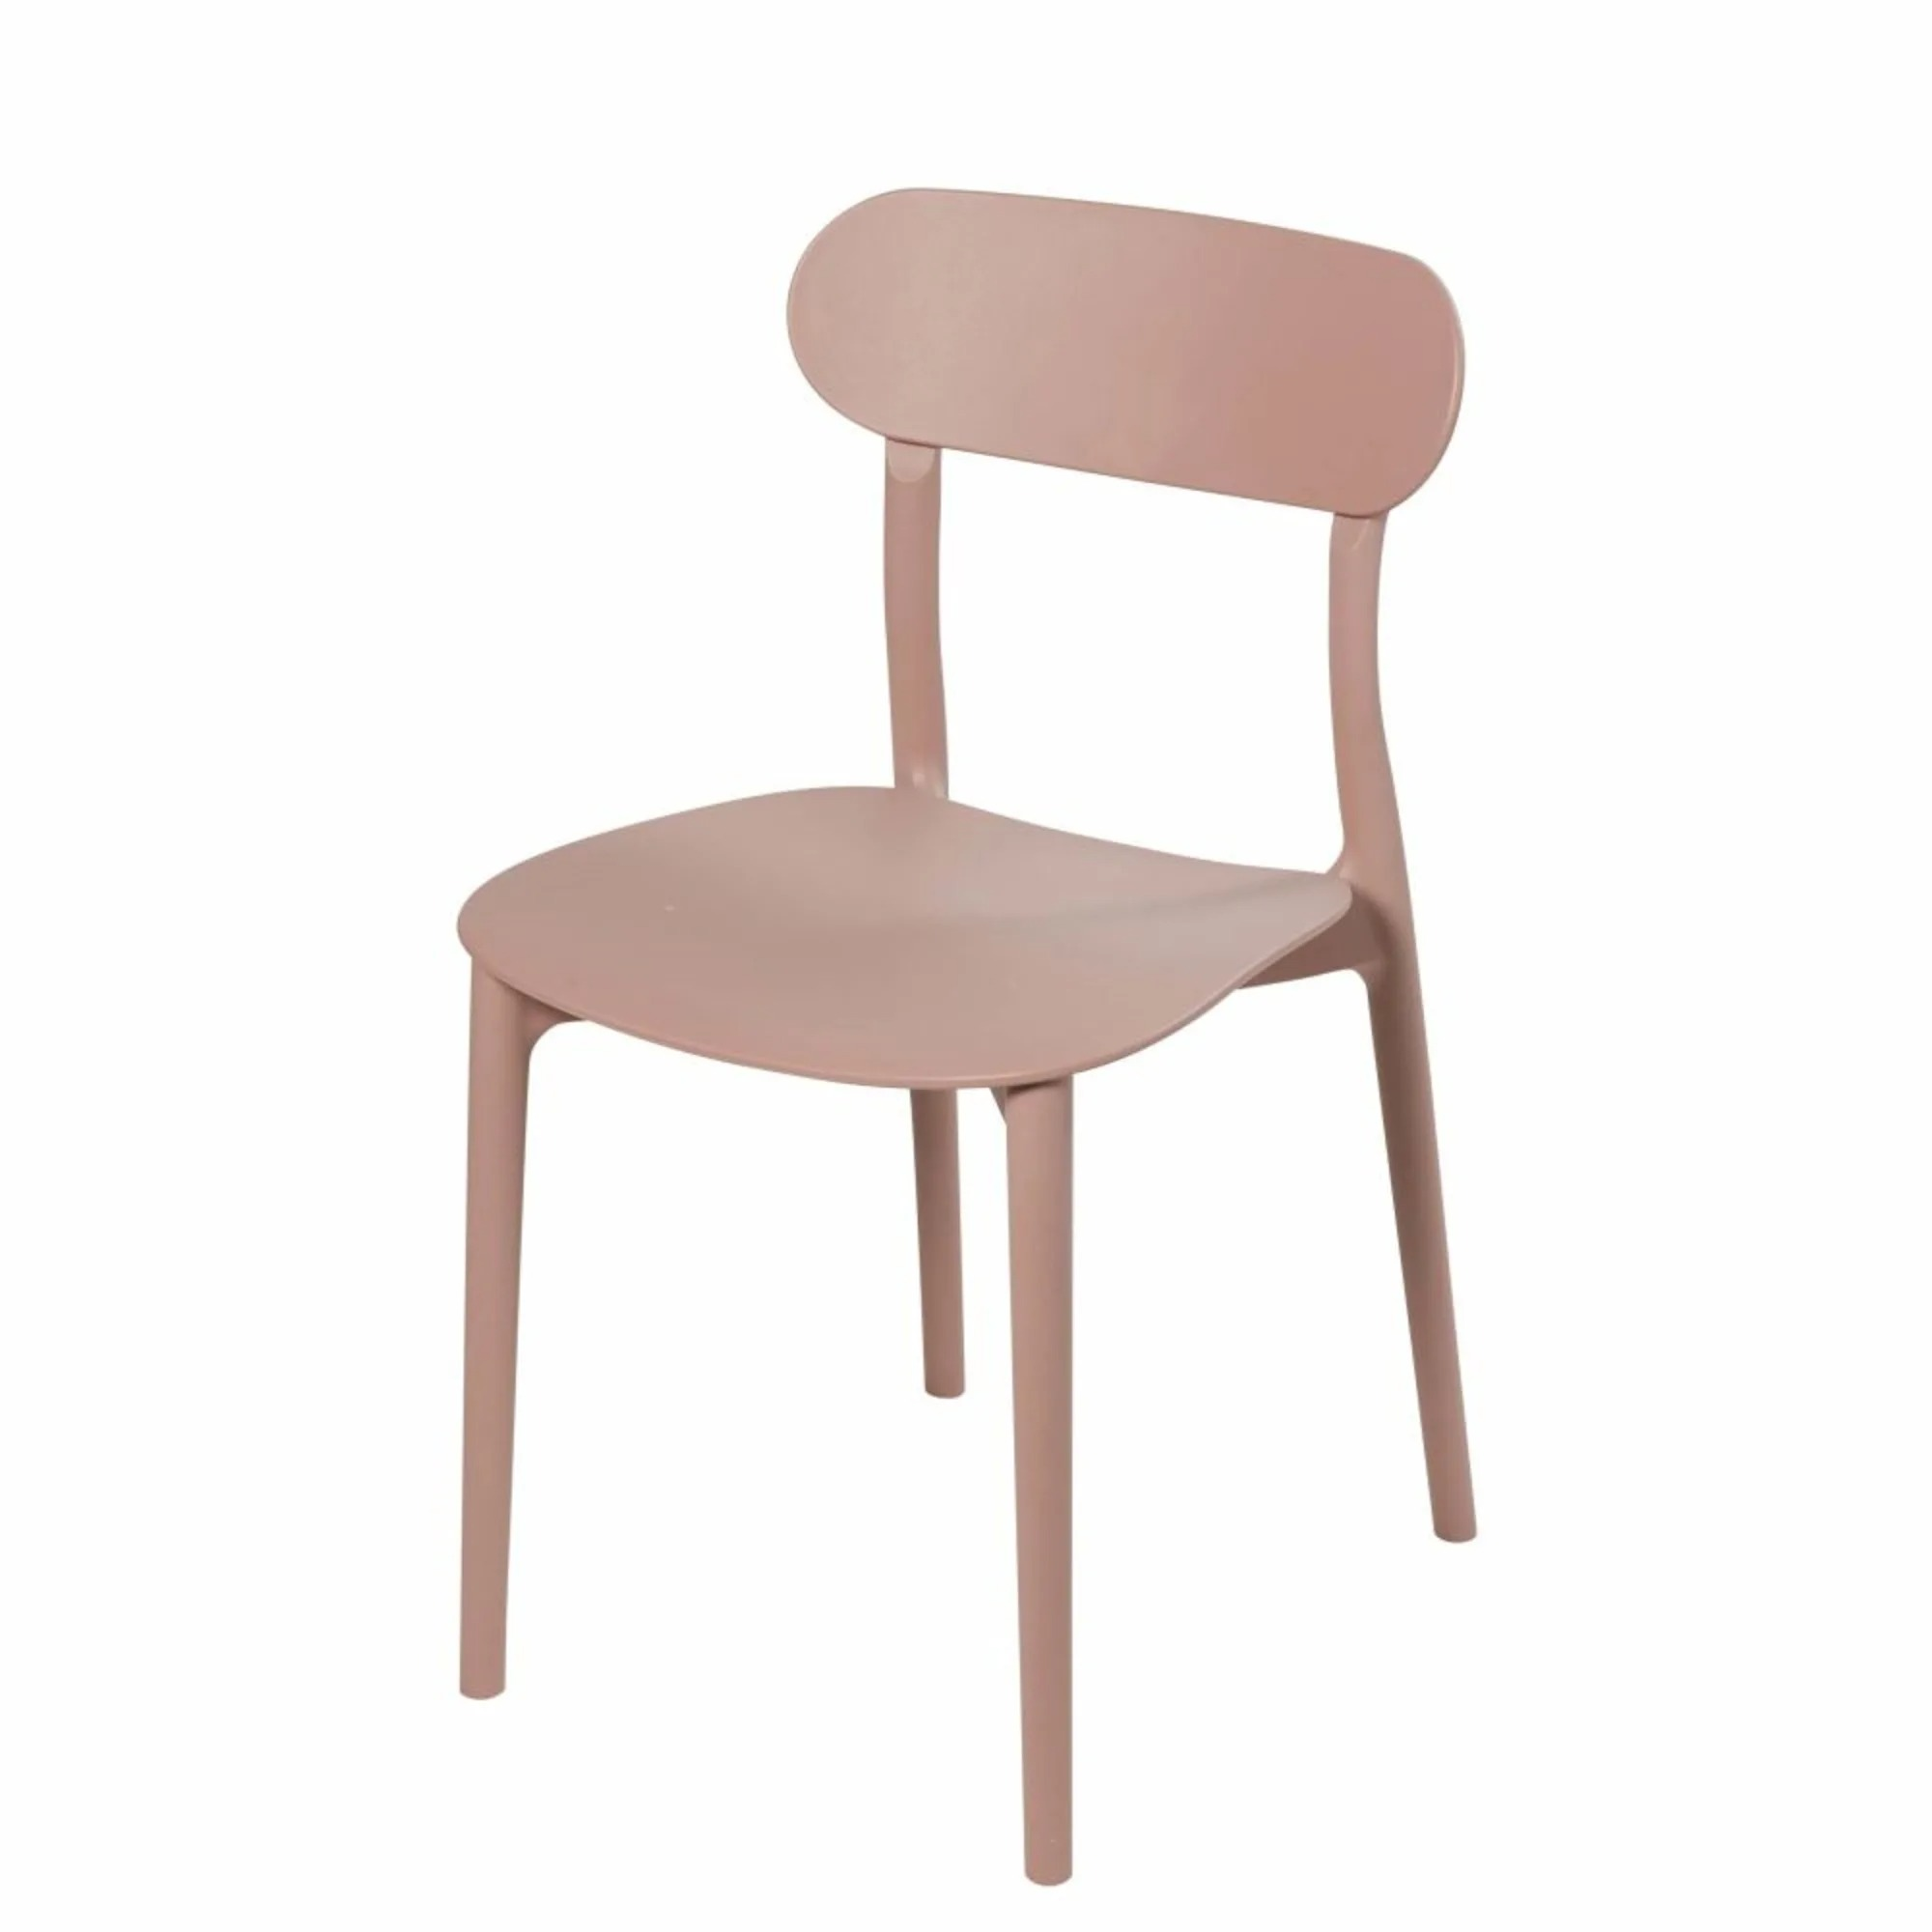 Silla color beige rosado